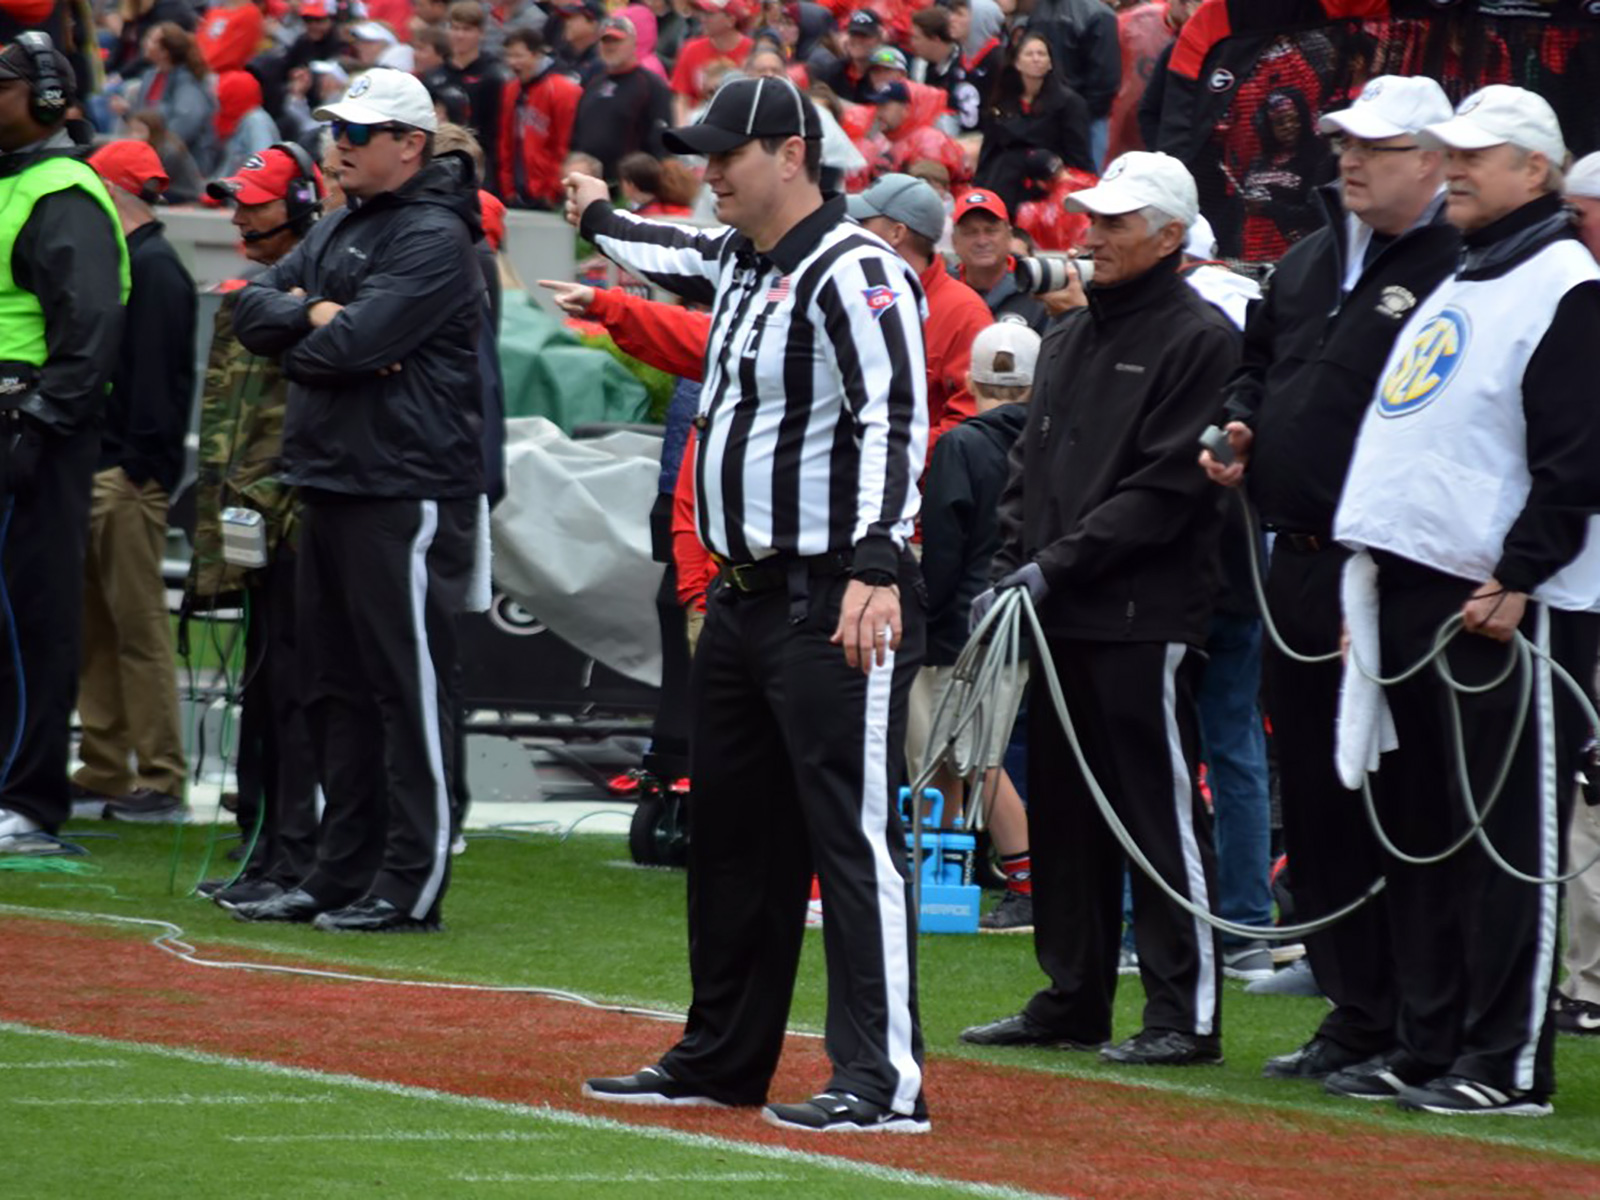 Among the numerous pre-snap responsibilities of the line judge: signaling to the other officials that the widest receiver is not on the line of scrimmage.